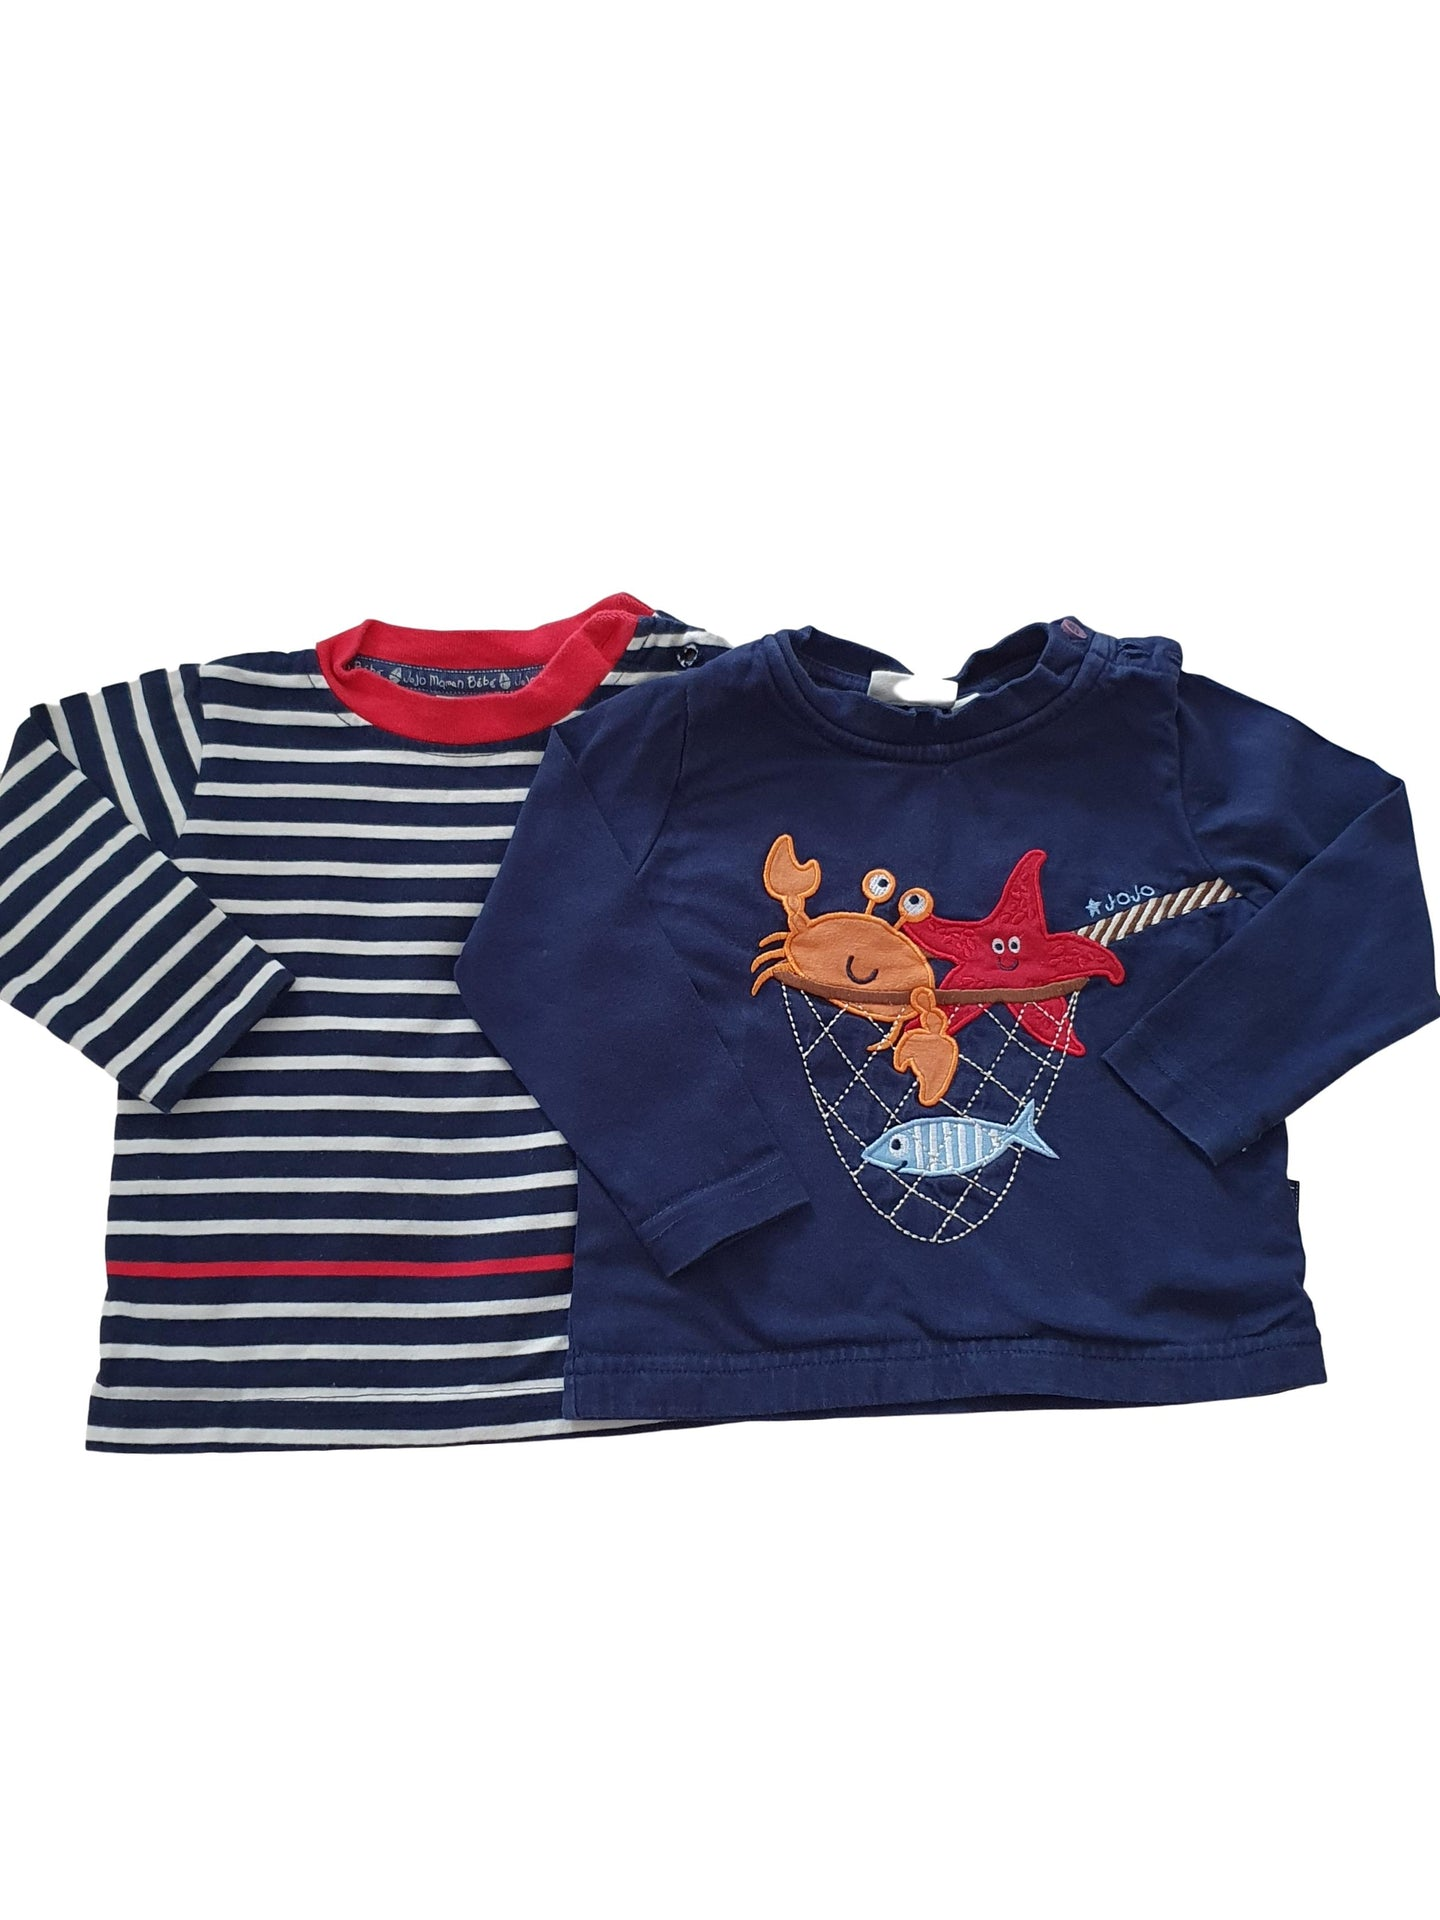 MAMAN JOJO BEBE boy tee shirt set 6-12m